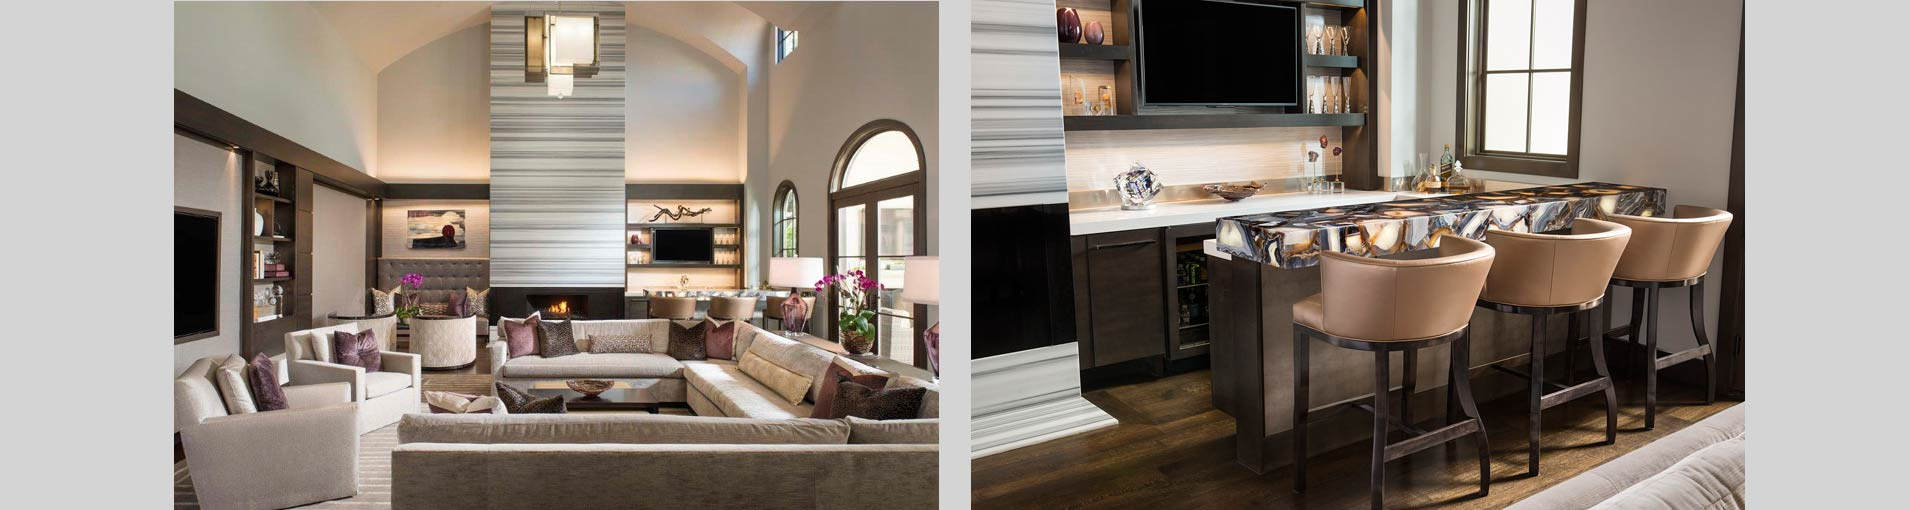 HOME BUILDER, NEW CONSTRUCTION AND REMODELING IN THE DALLAS / FT. WORTH AREA